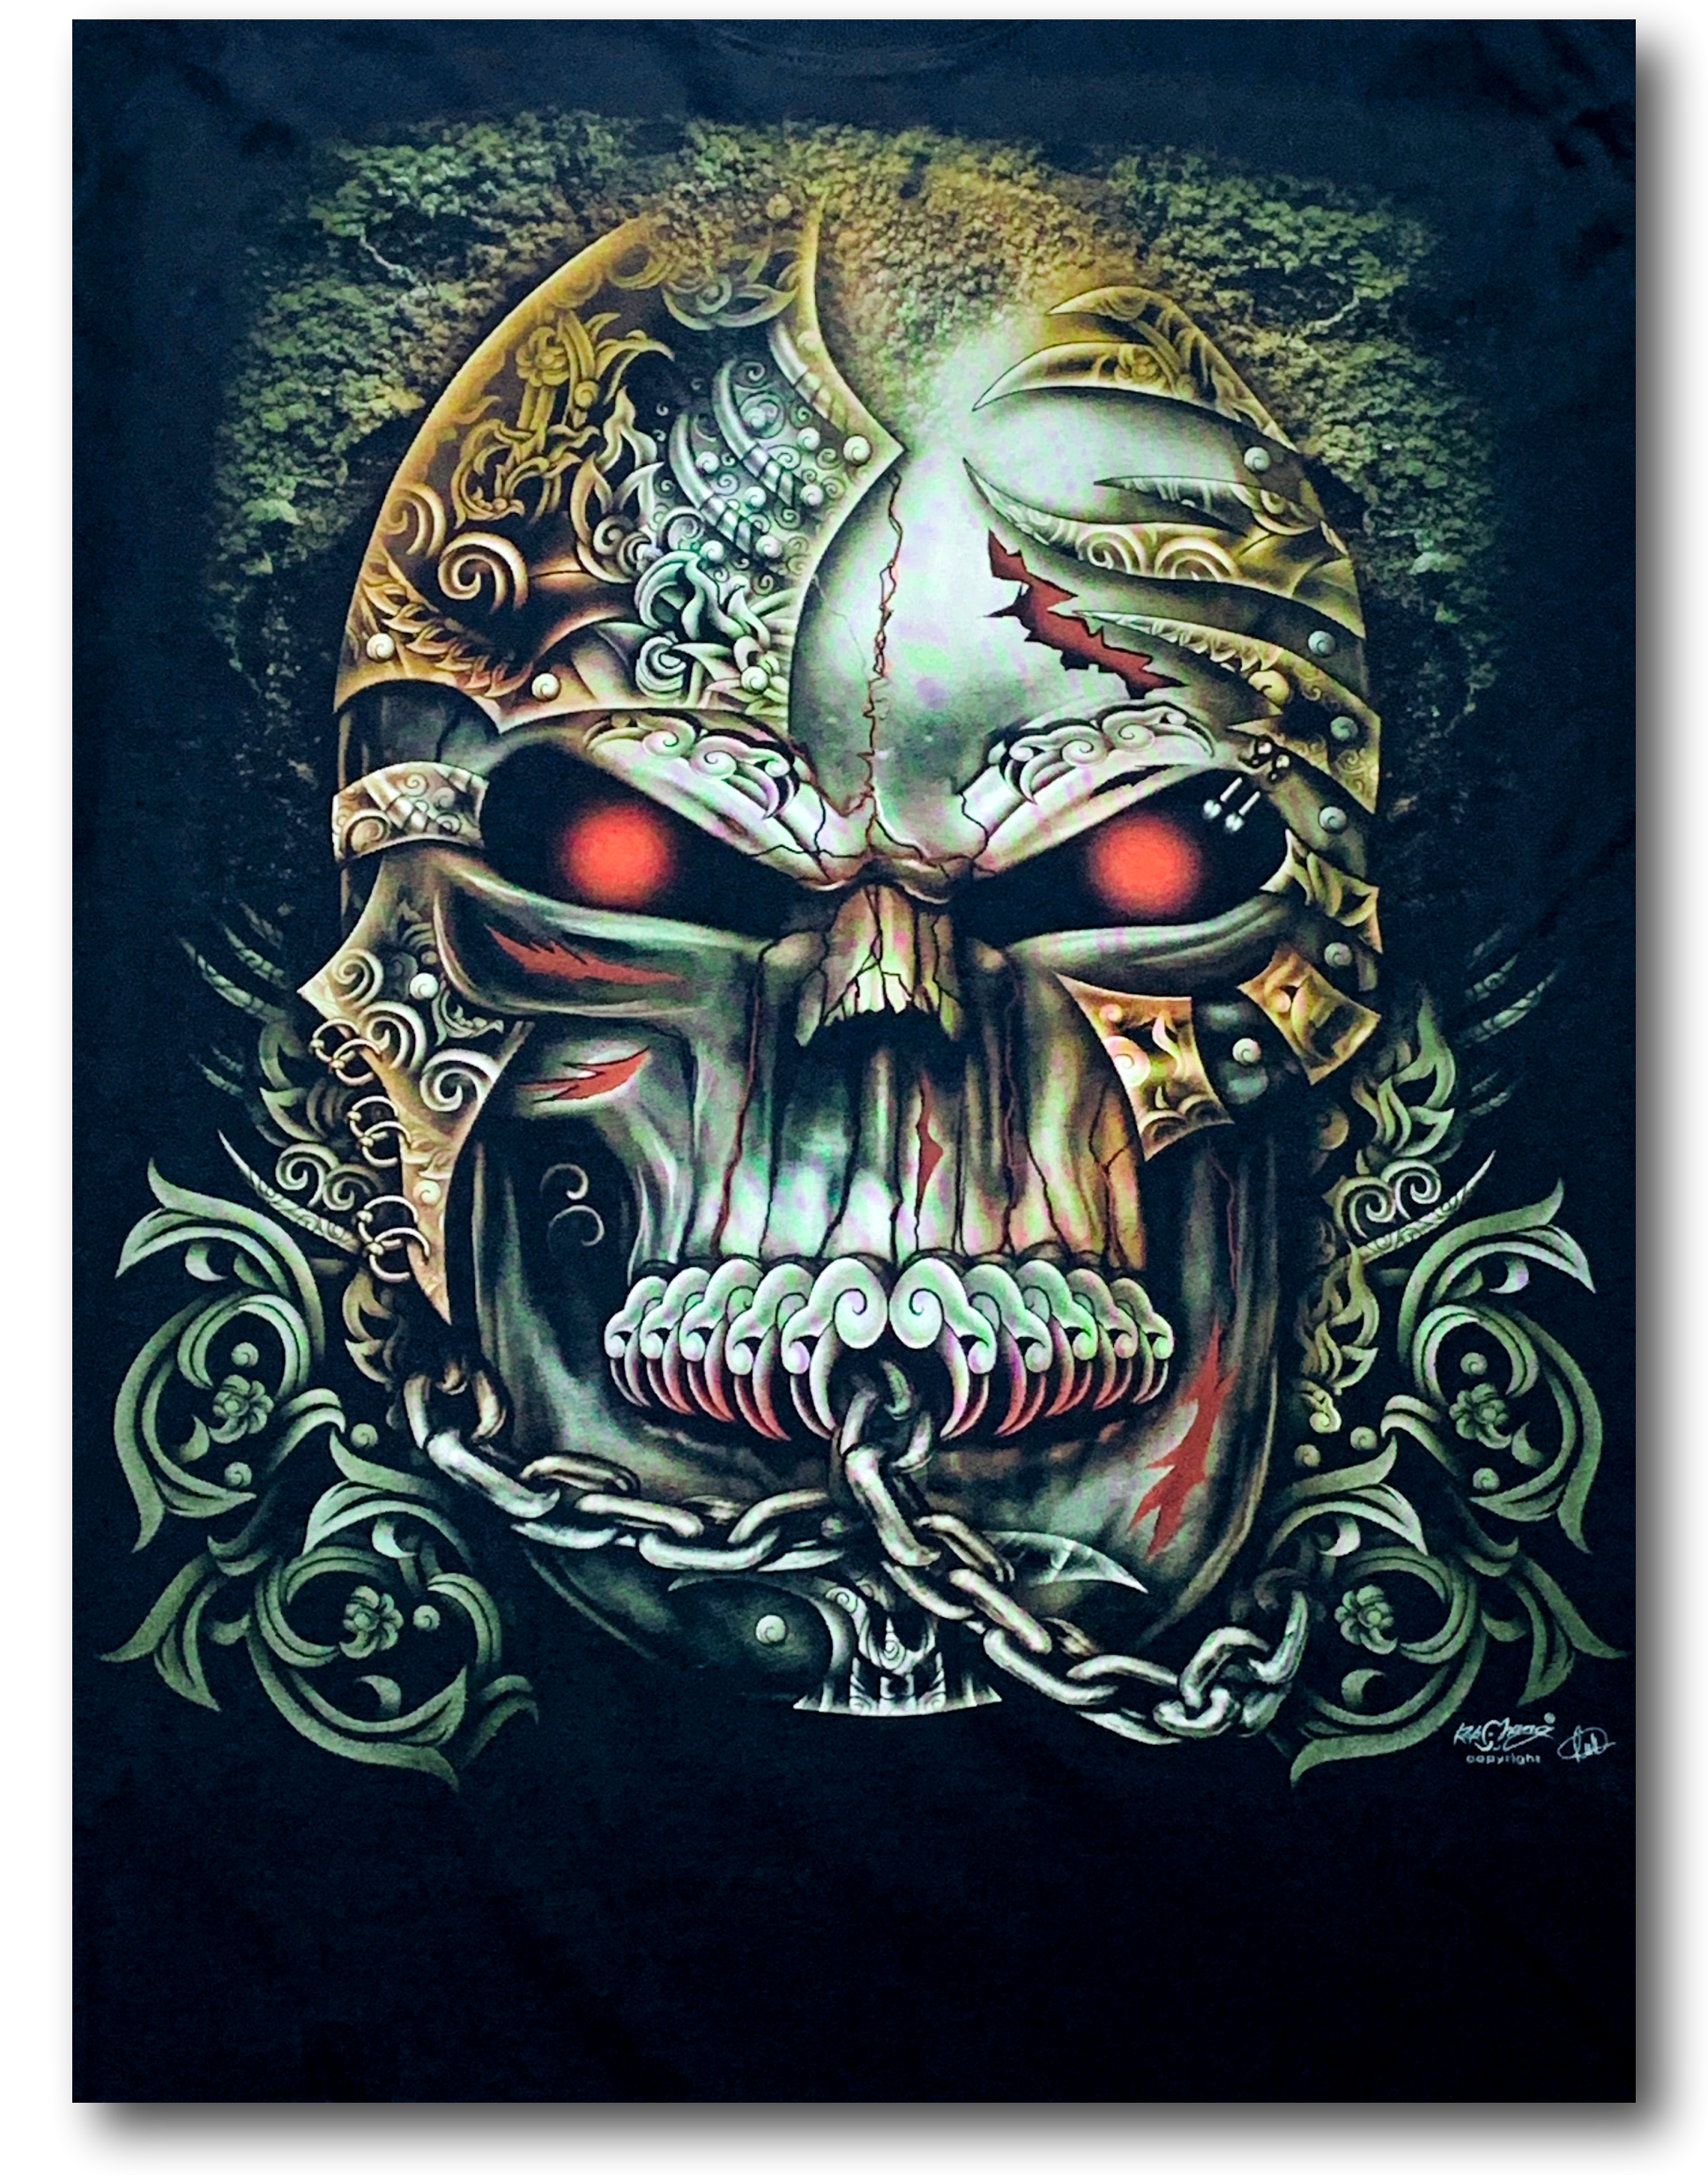 Tattoo Skull Head Red Eyes and Chain Glow in the Dark HD Rock Chang T-Shirt